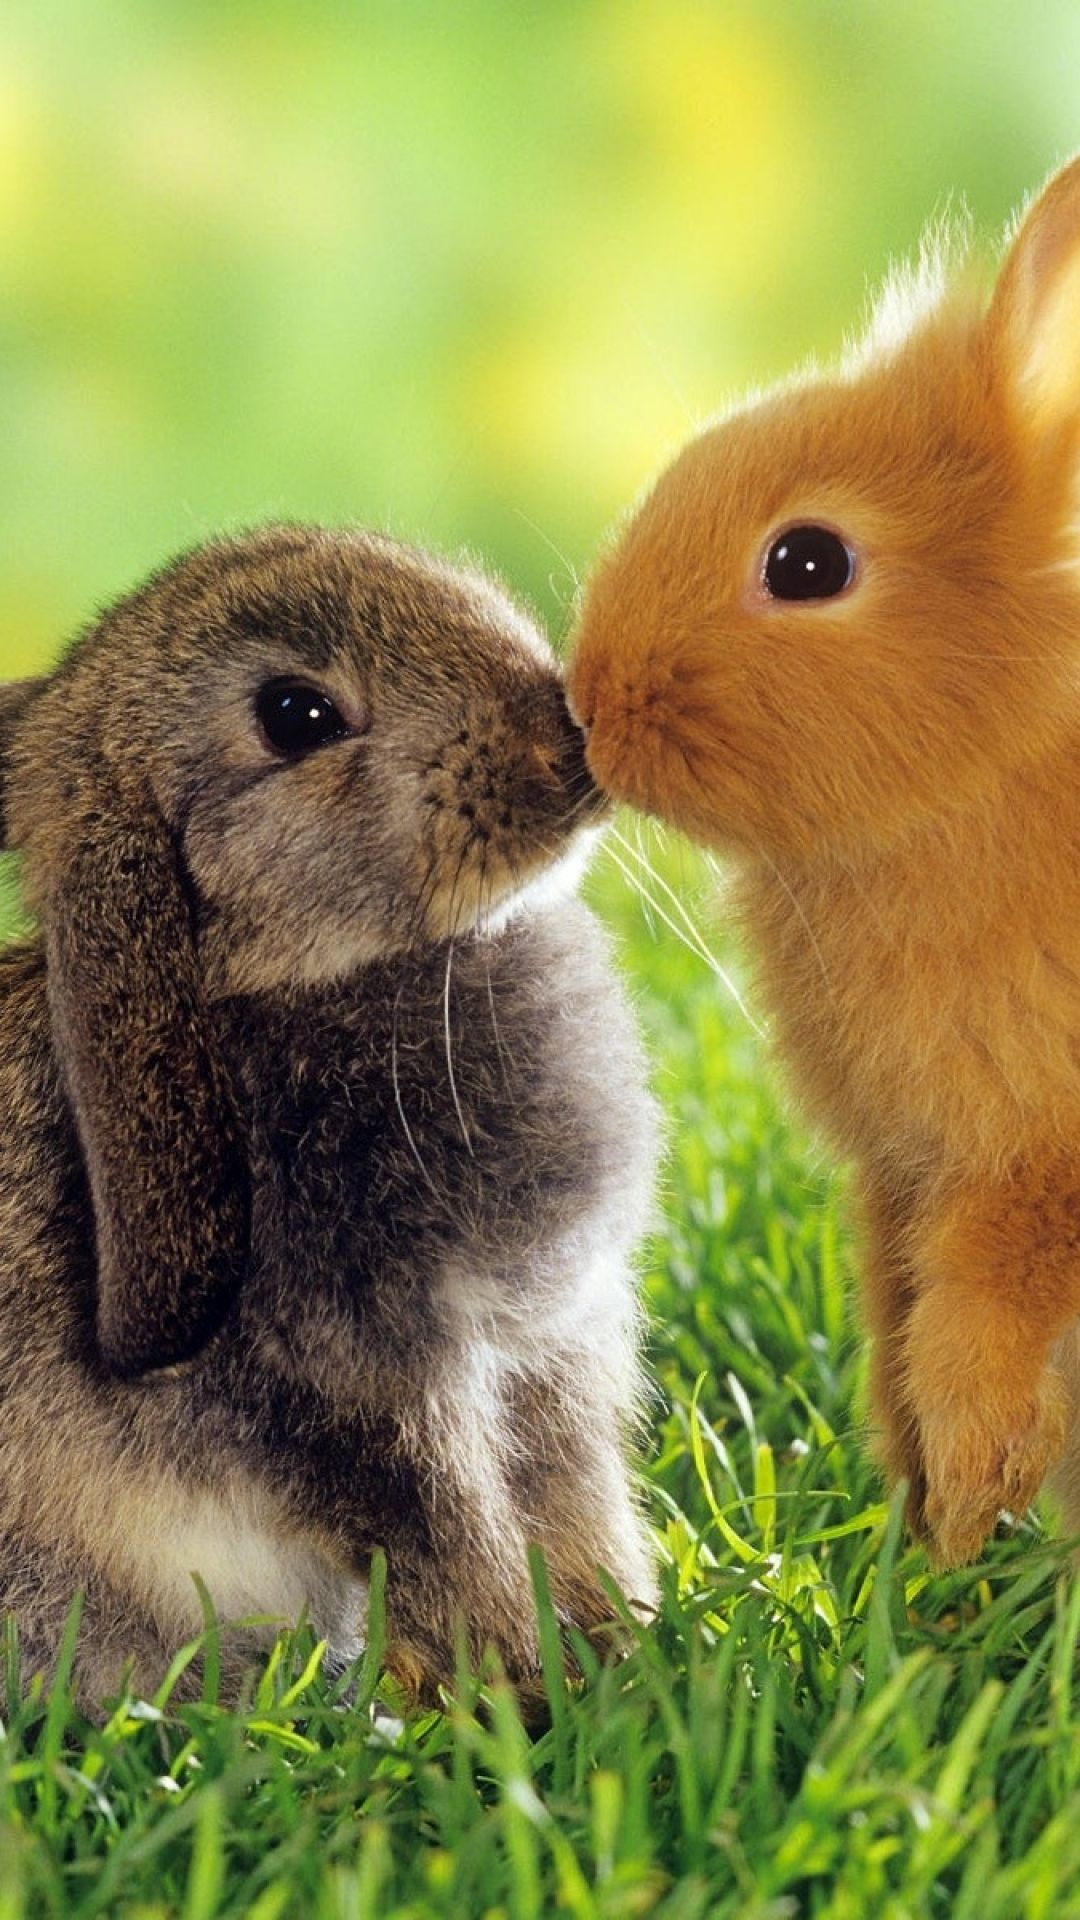 rabbit couple kiss grass